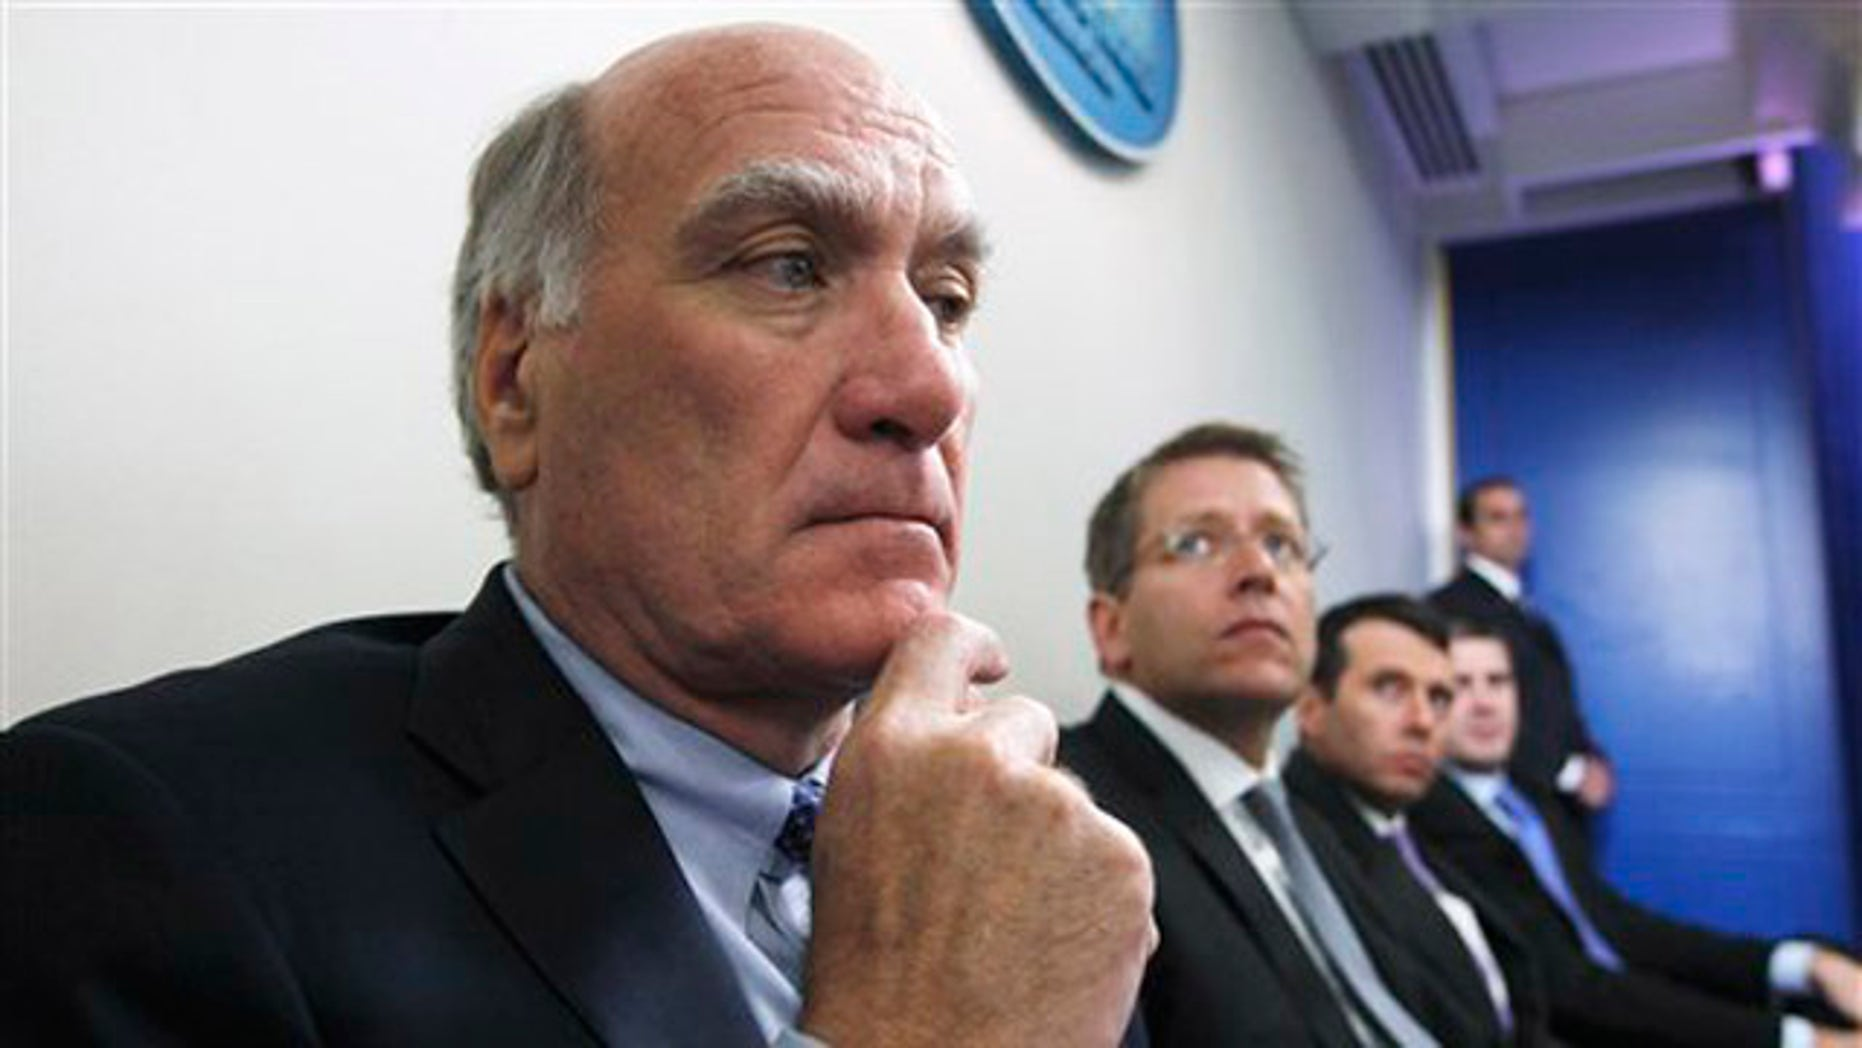 White House Chief of Staff William Daley, left, and others listen as President Obama speaks at the White House in Washington July 11 before meeting with Republican and Democratic leaders regarding the debt ceiling.